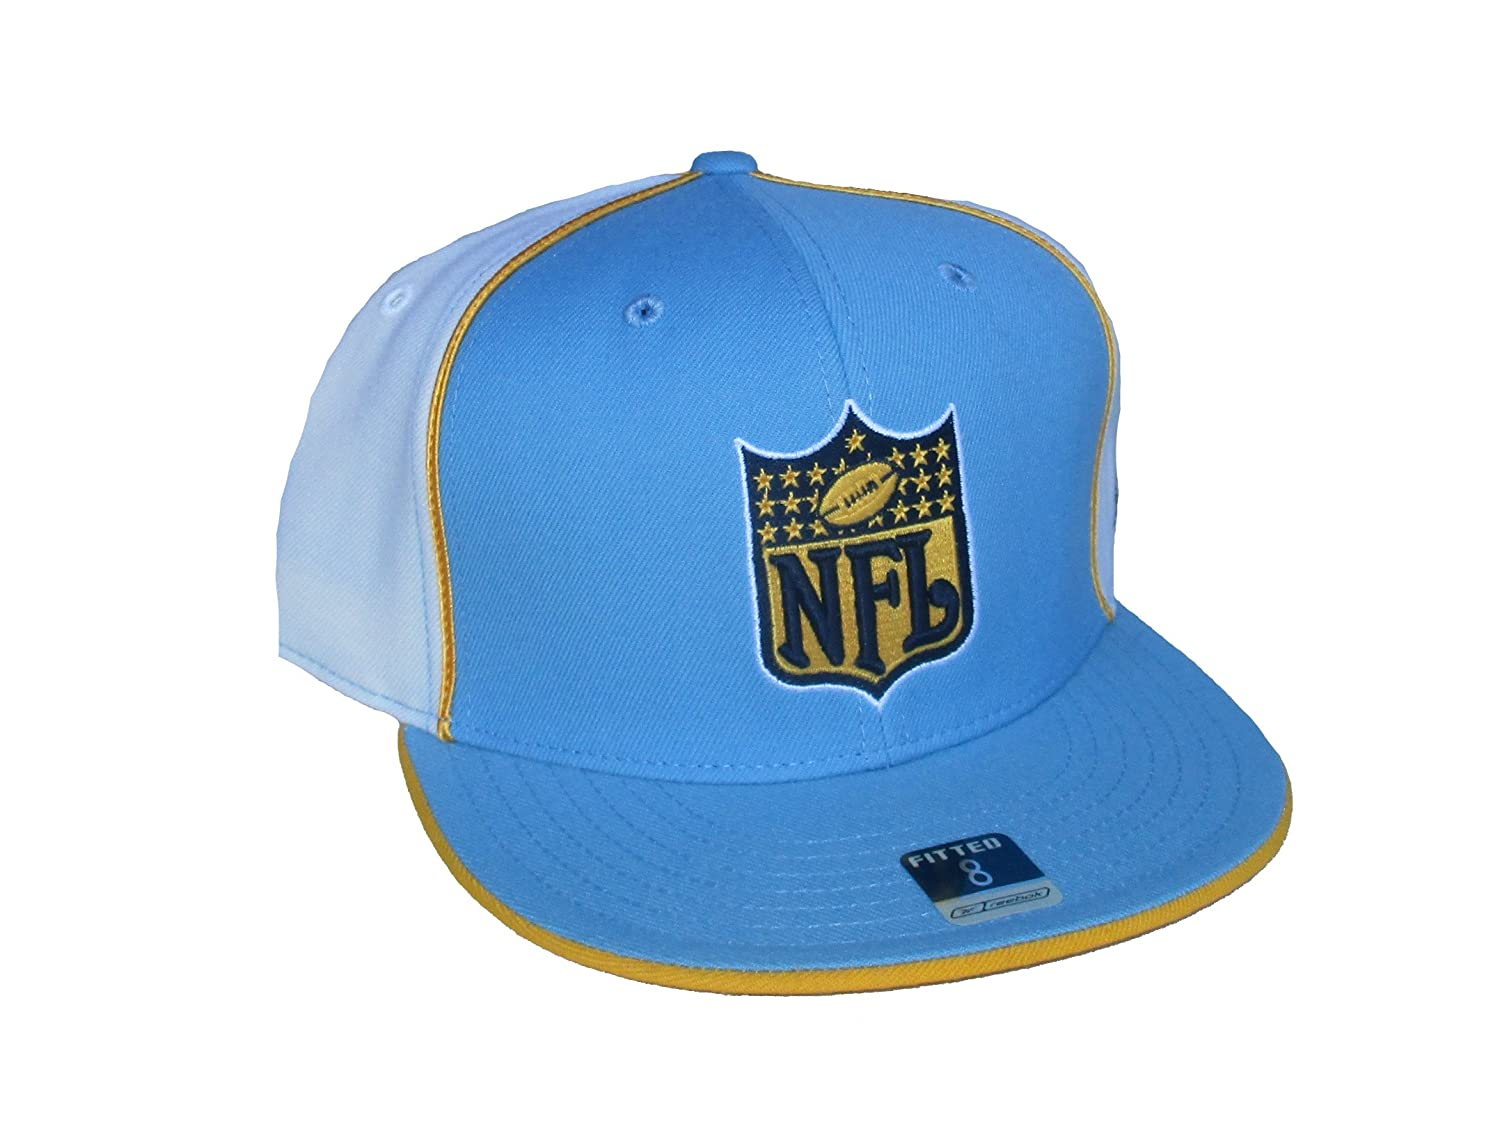 Amazon.com   NFL Shield Logo San Diego Chargers Fitted Size 8 NFL Authentic  Players Blue   Gray Side Panel Hat Cap   Sports   Outdoors f7d148d020d